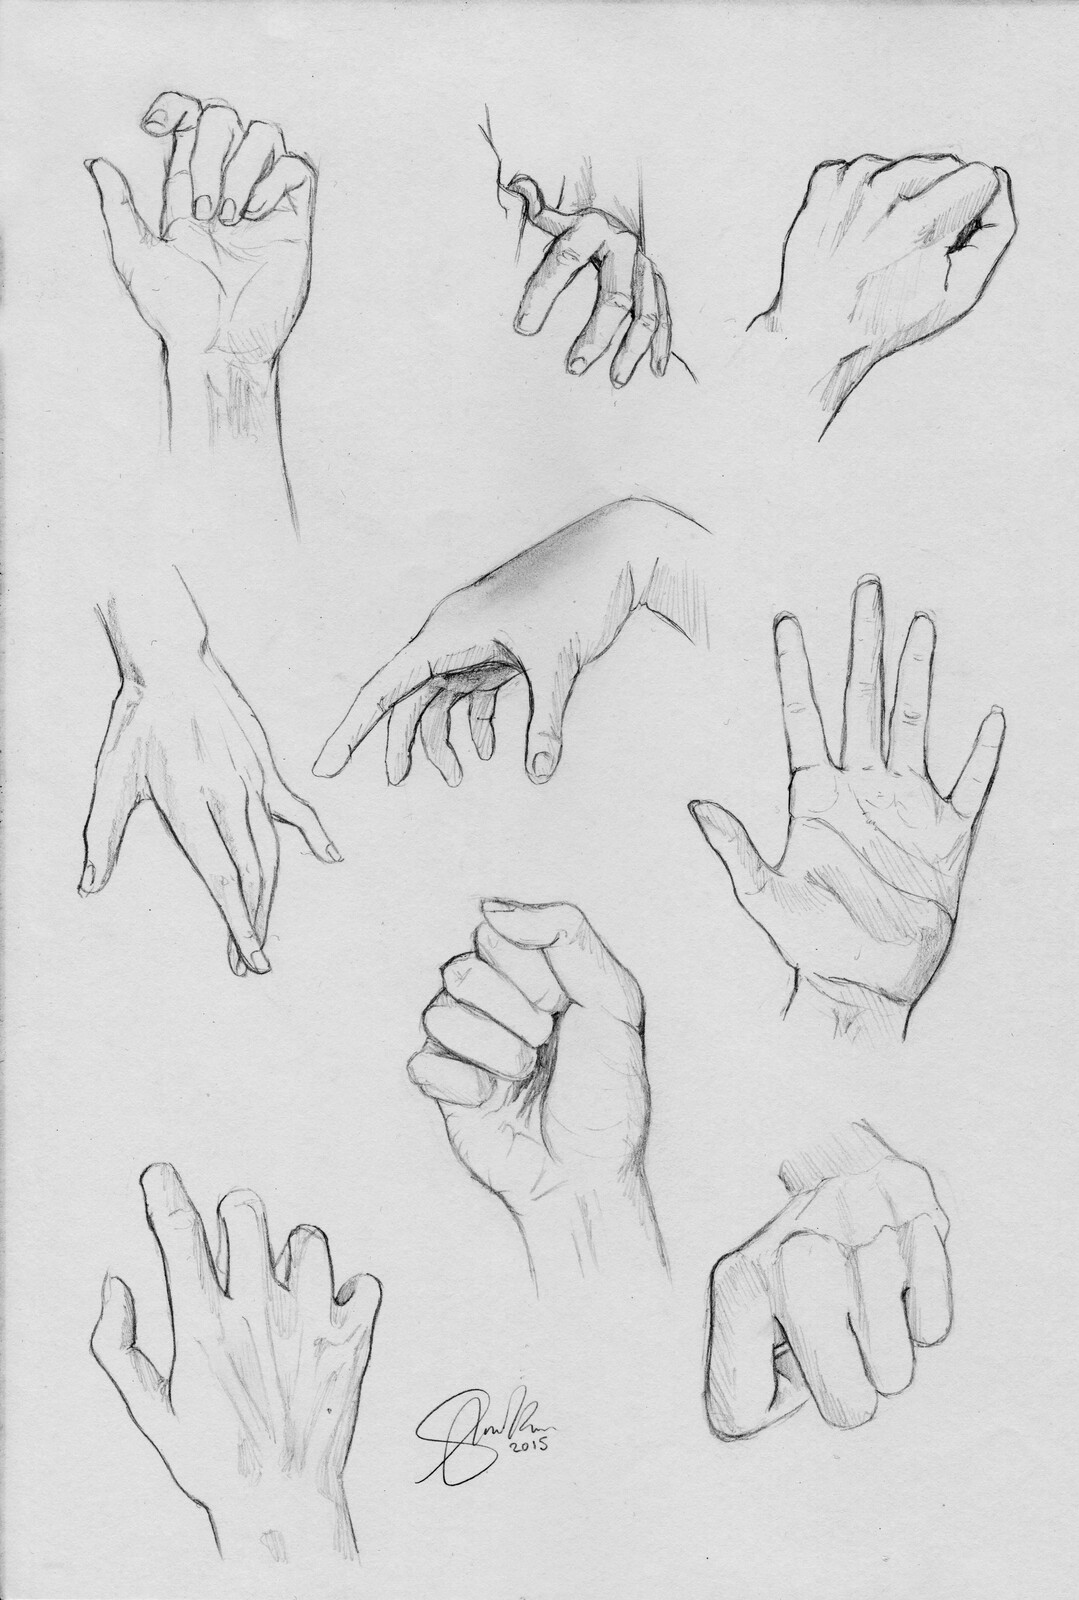 Anatomy Study | Hands